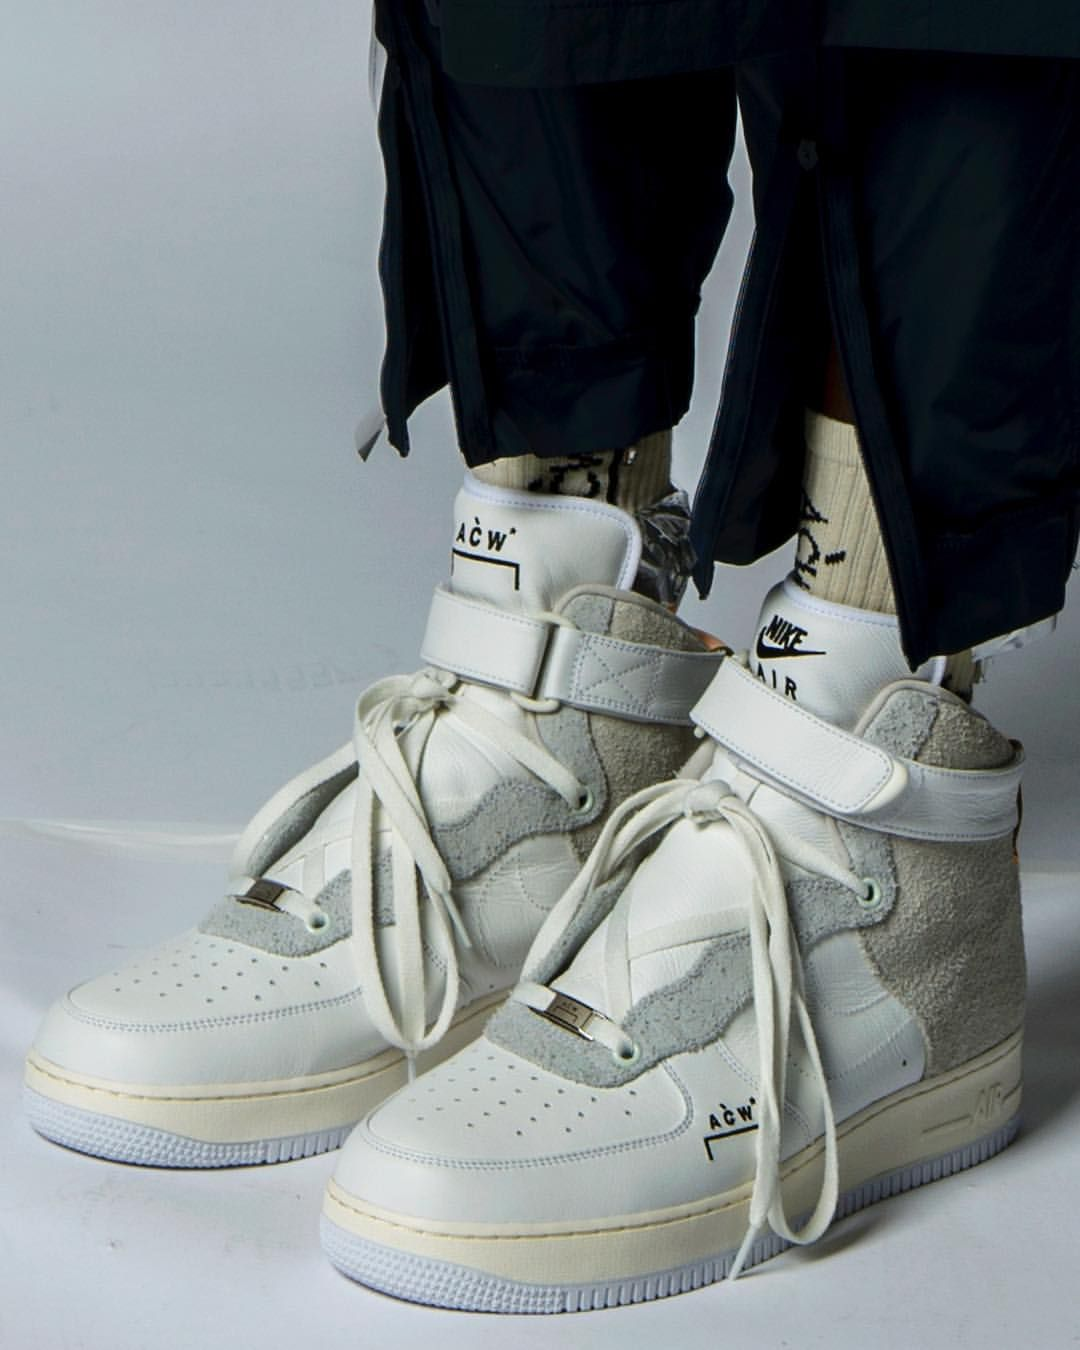 reputable site b33fb 6e483 A-COLD-WALL x Nike AF1